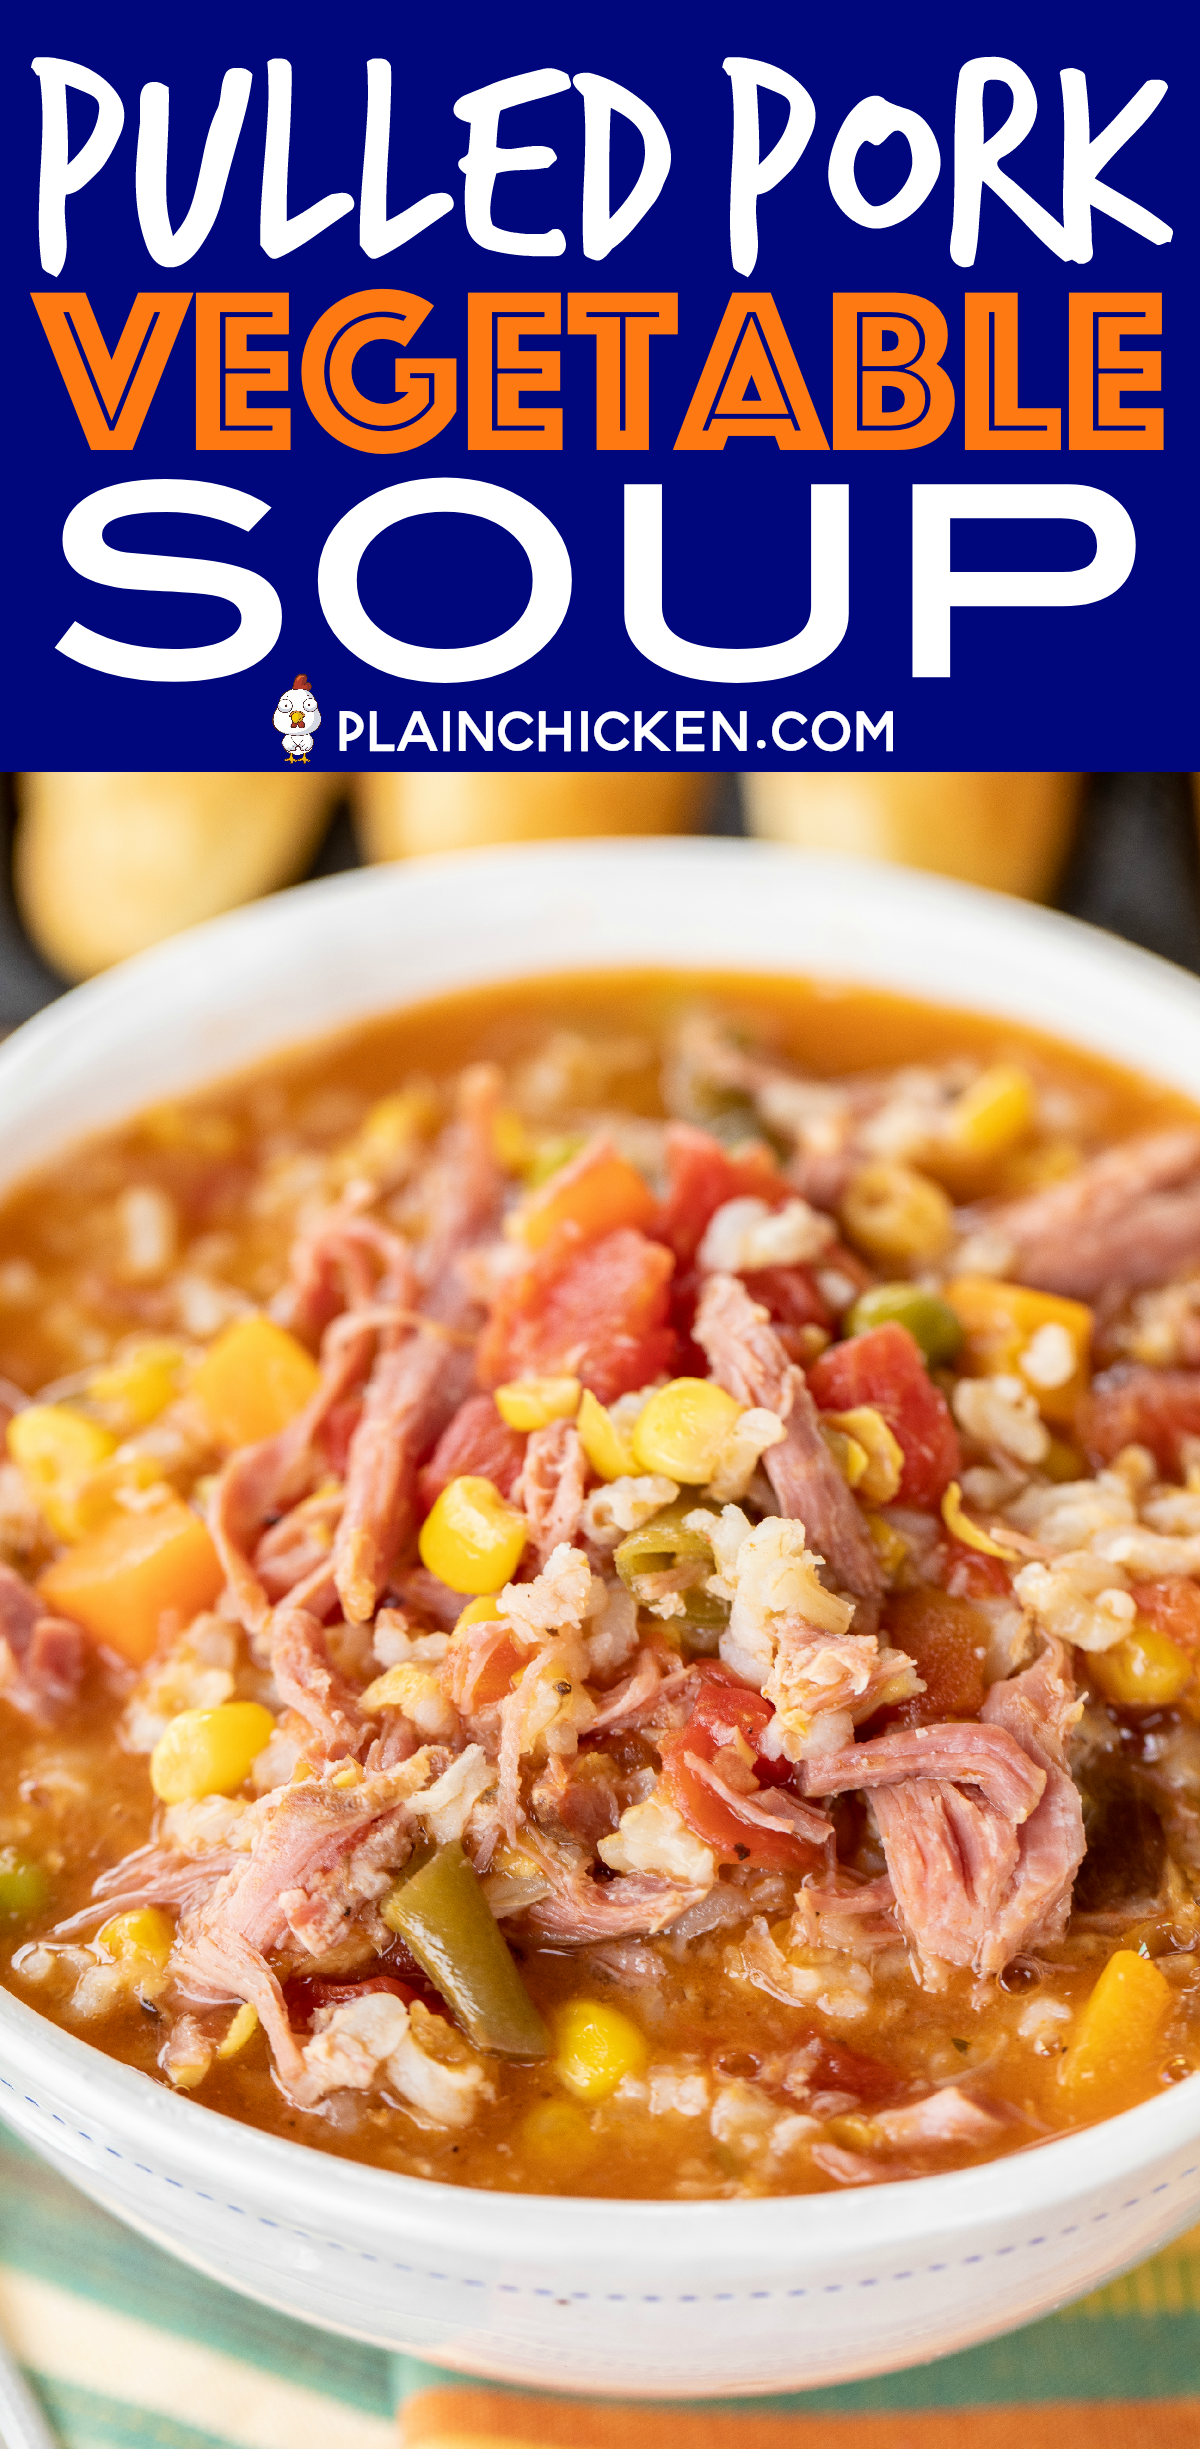 Pulled Pork Vegetable Soup Hands Down The Best Vegetable Soup Ever Ready To Eat In About 30 Minu Pork Soup Recipes Smoked Pulled Pork Plain Chicken Recipe